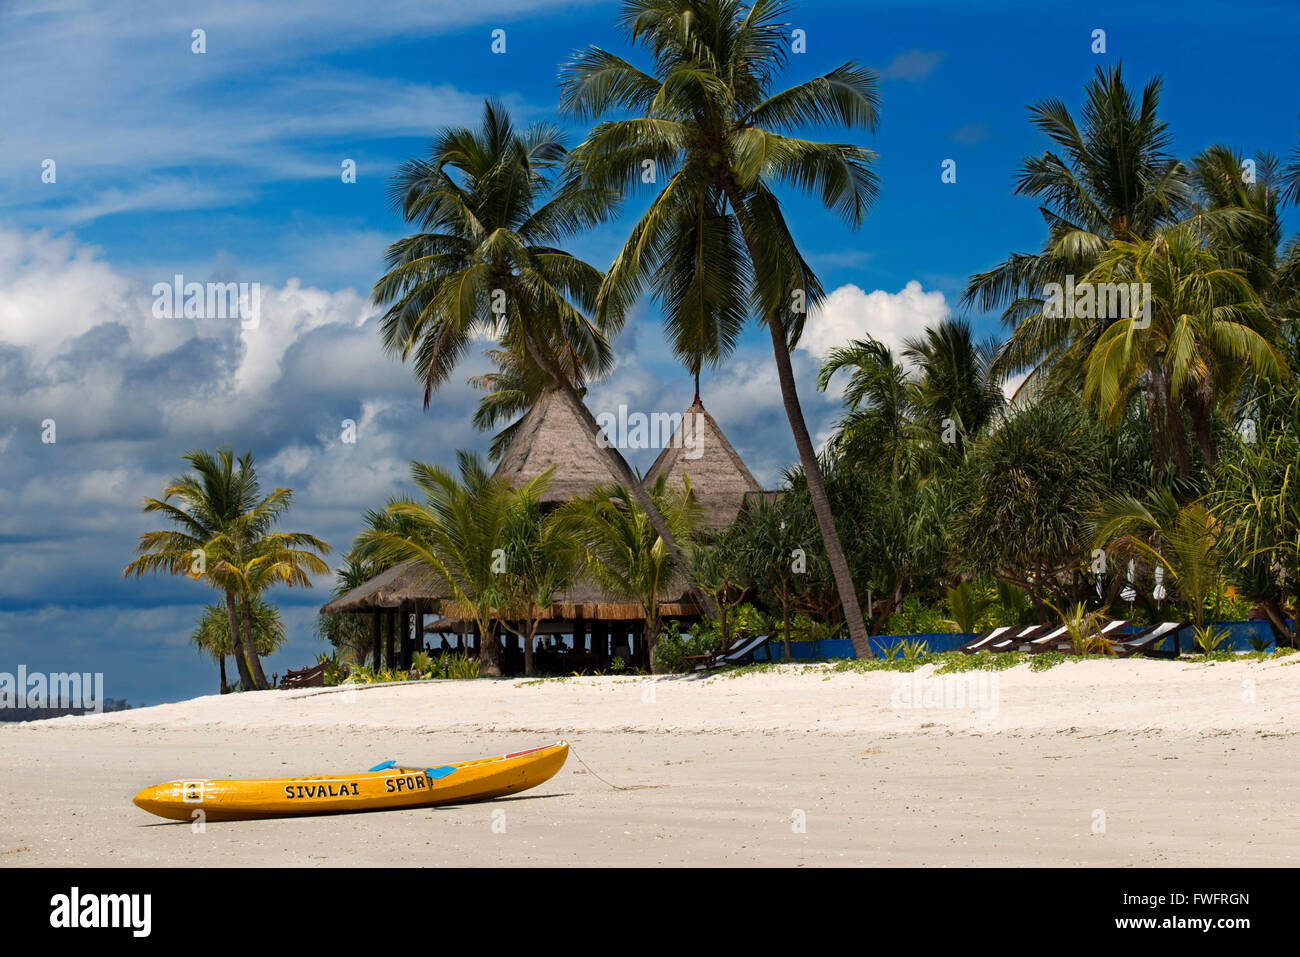 Kayak on a Hotel on a palm-lined beach, Koh Mook Sivalai Beach Resort Hotel, island of Ko Muk or , Thailand, Southeast - Stock Image